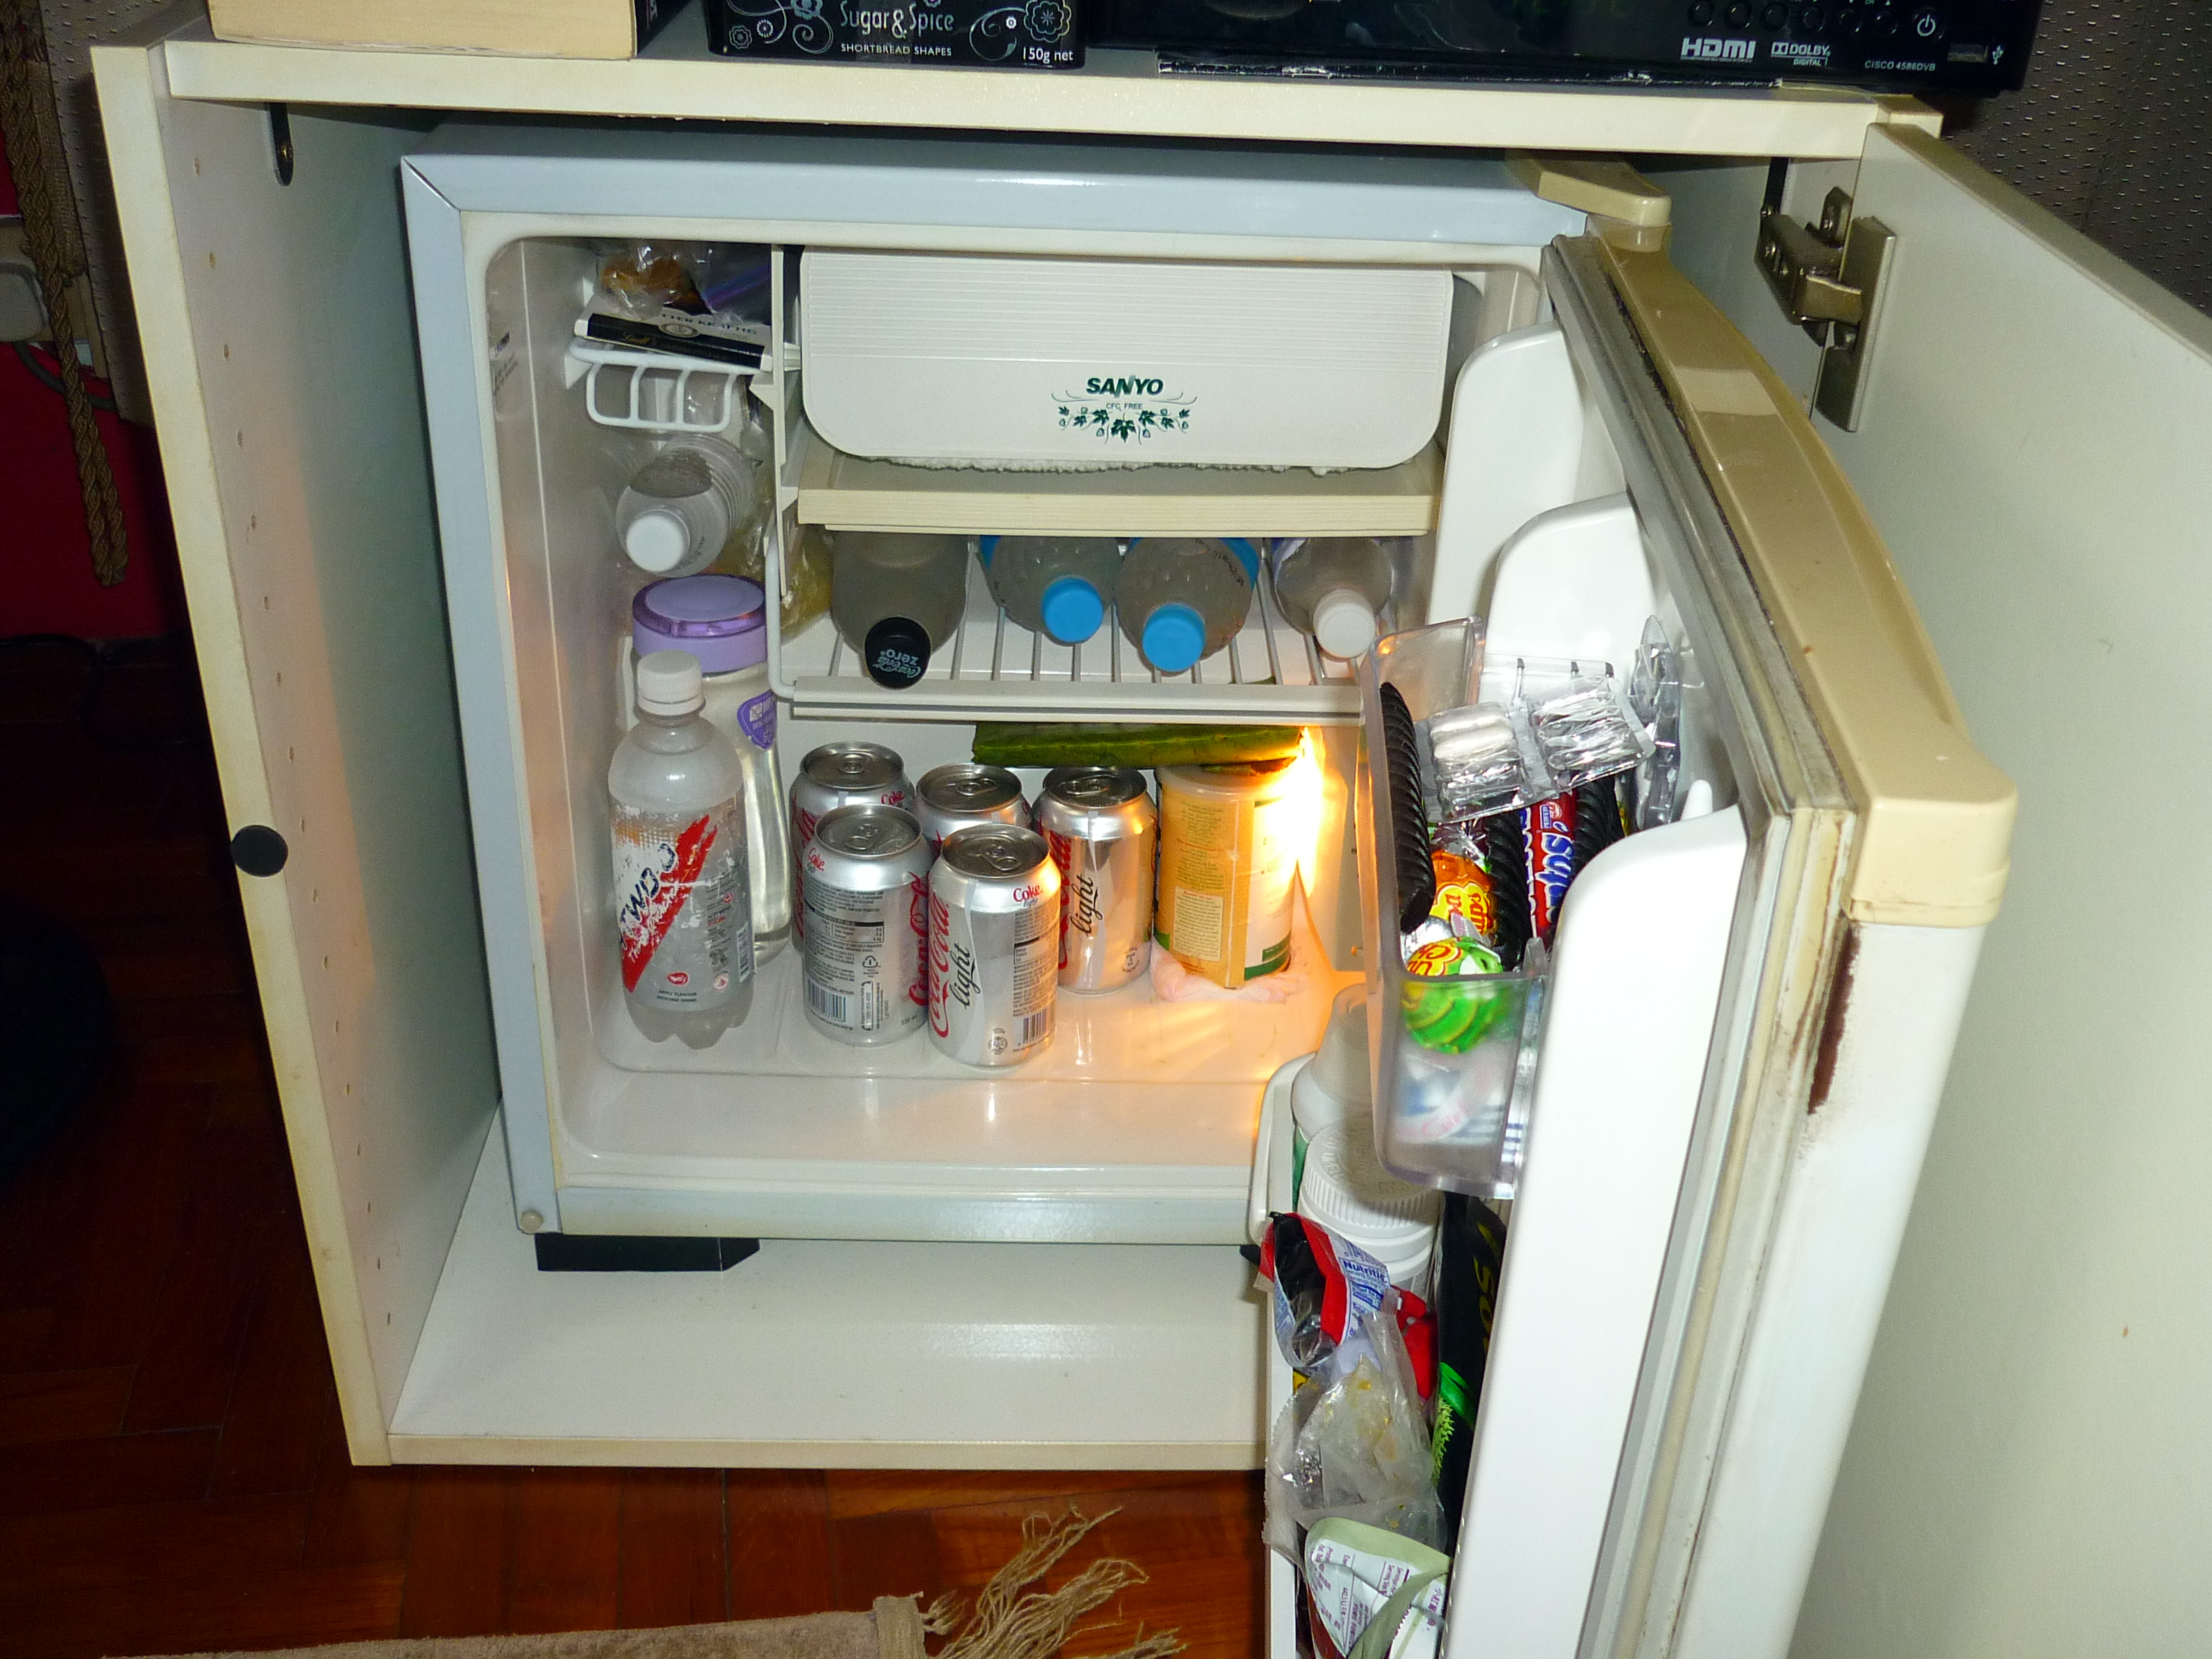 Mini Fridge - SANYO